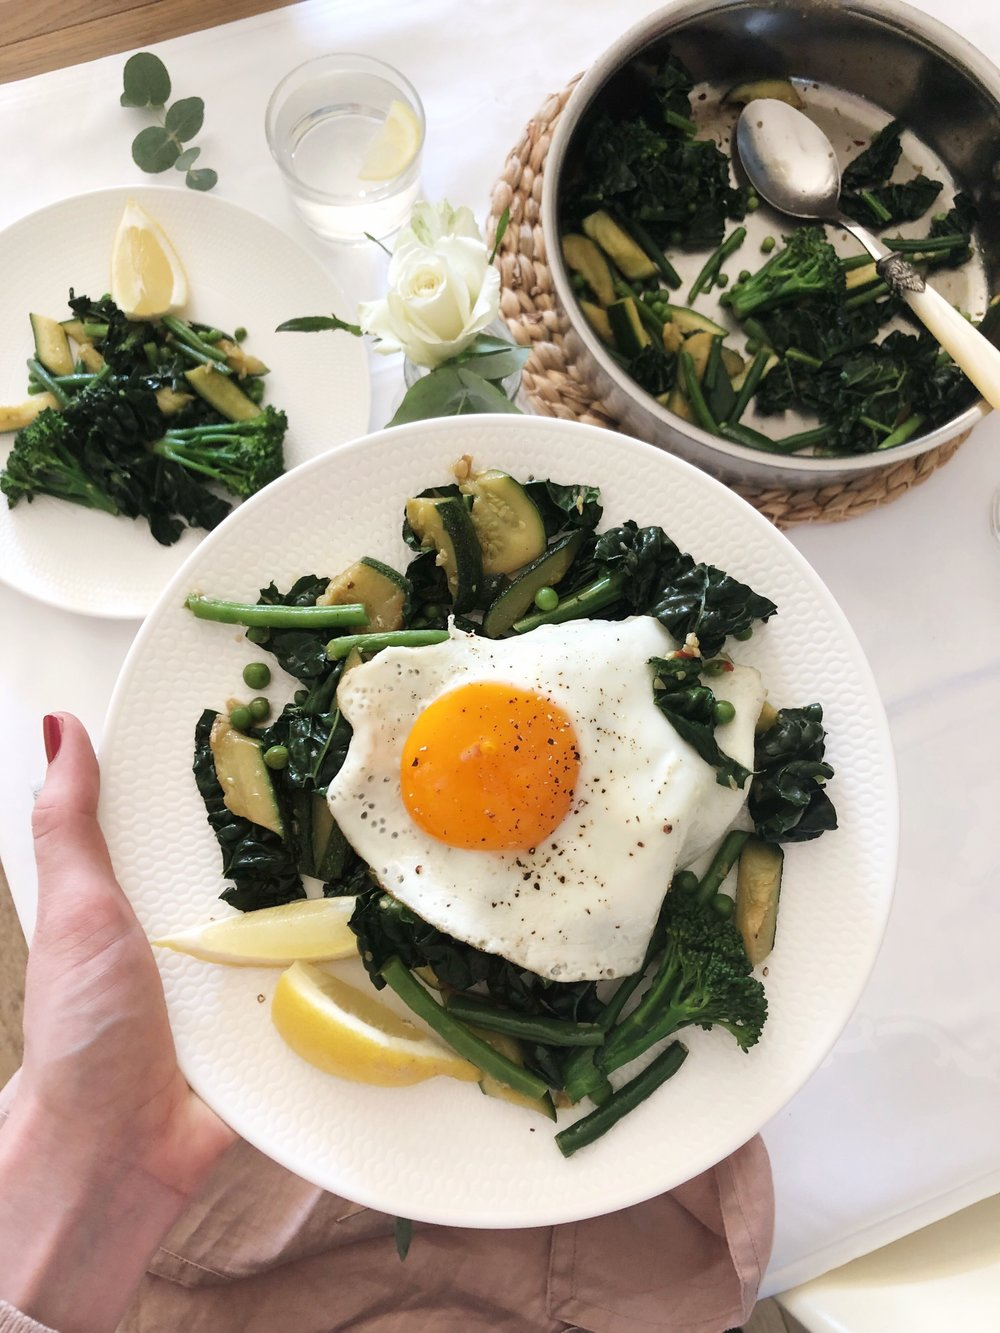 Sunday night supper - stir fired greens with fried egg - Prue Leith - Desert Island Dishes - Margie Nomura